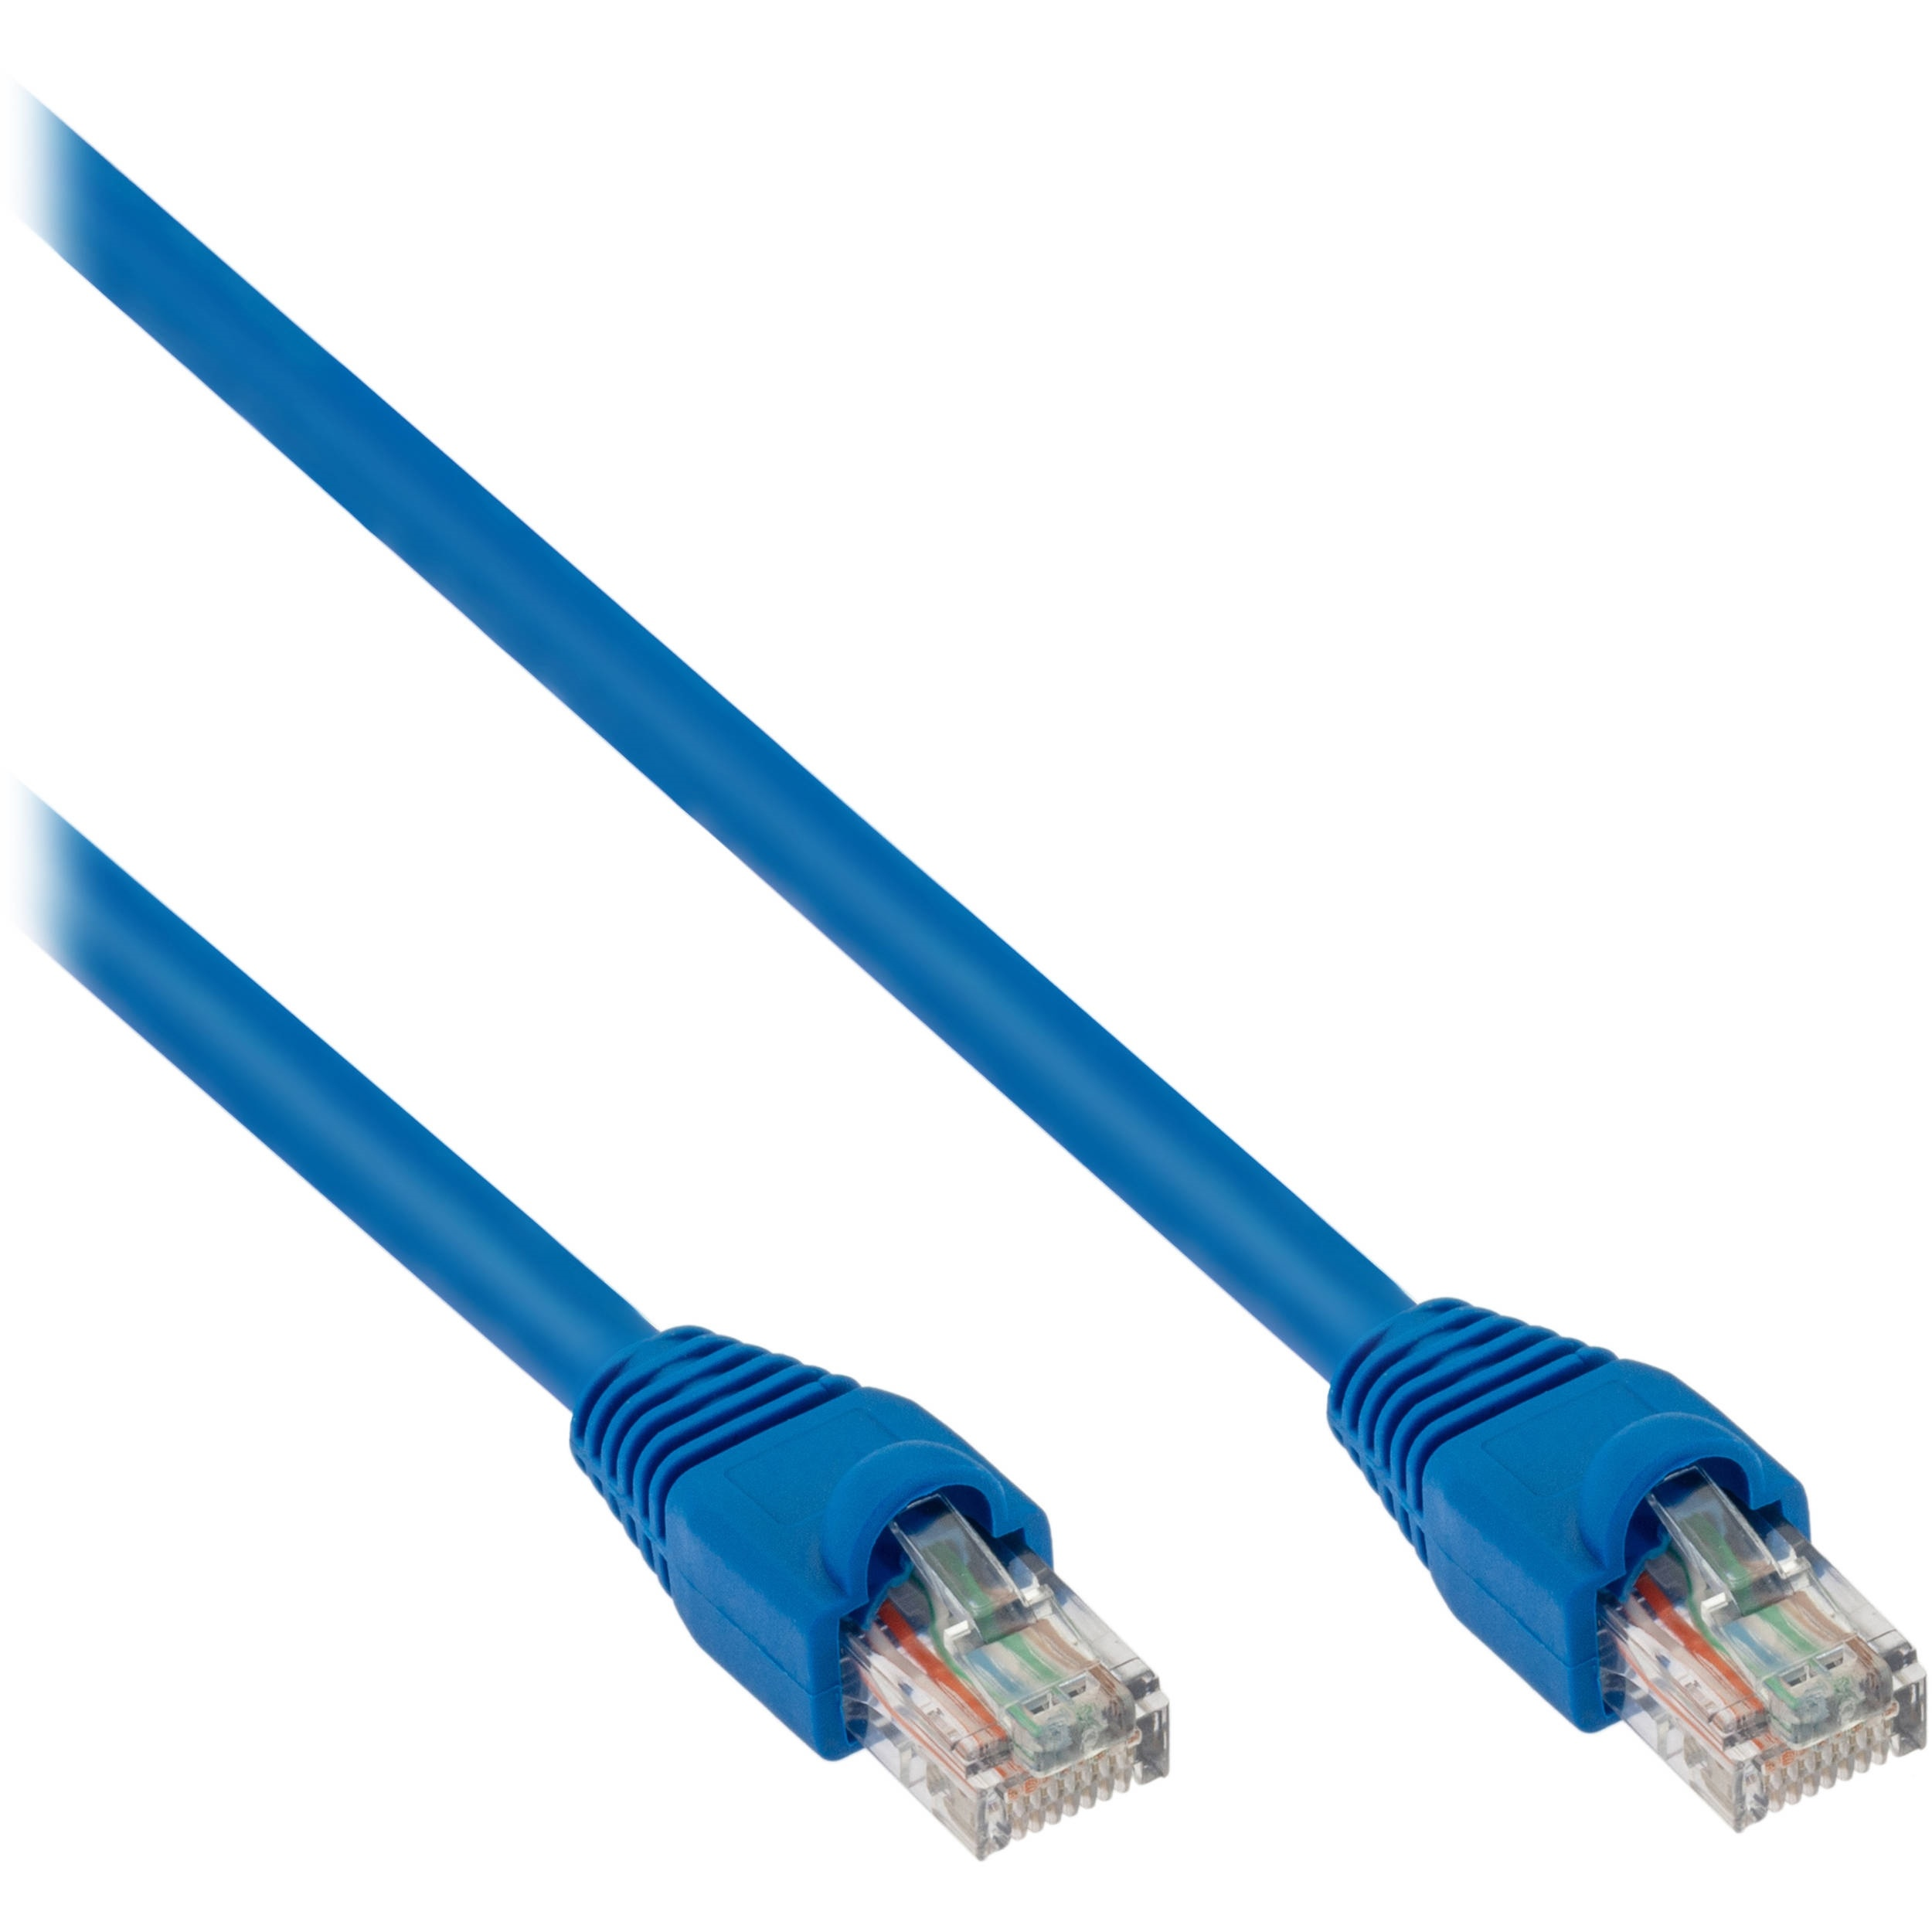 Pearstone Cat 5e Snagless Patch Cable (25', Blue)